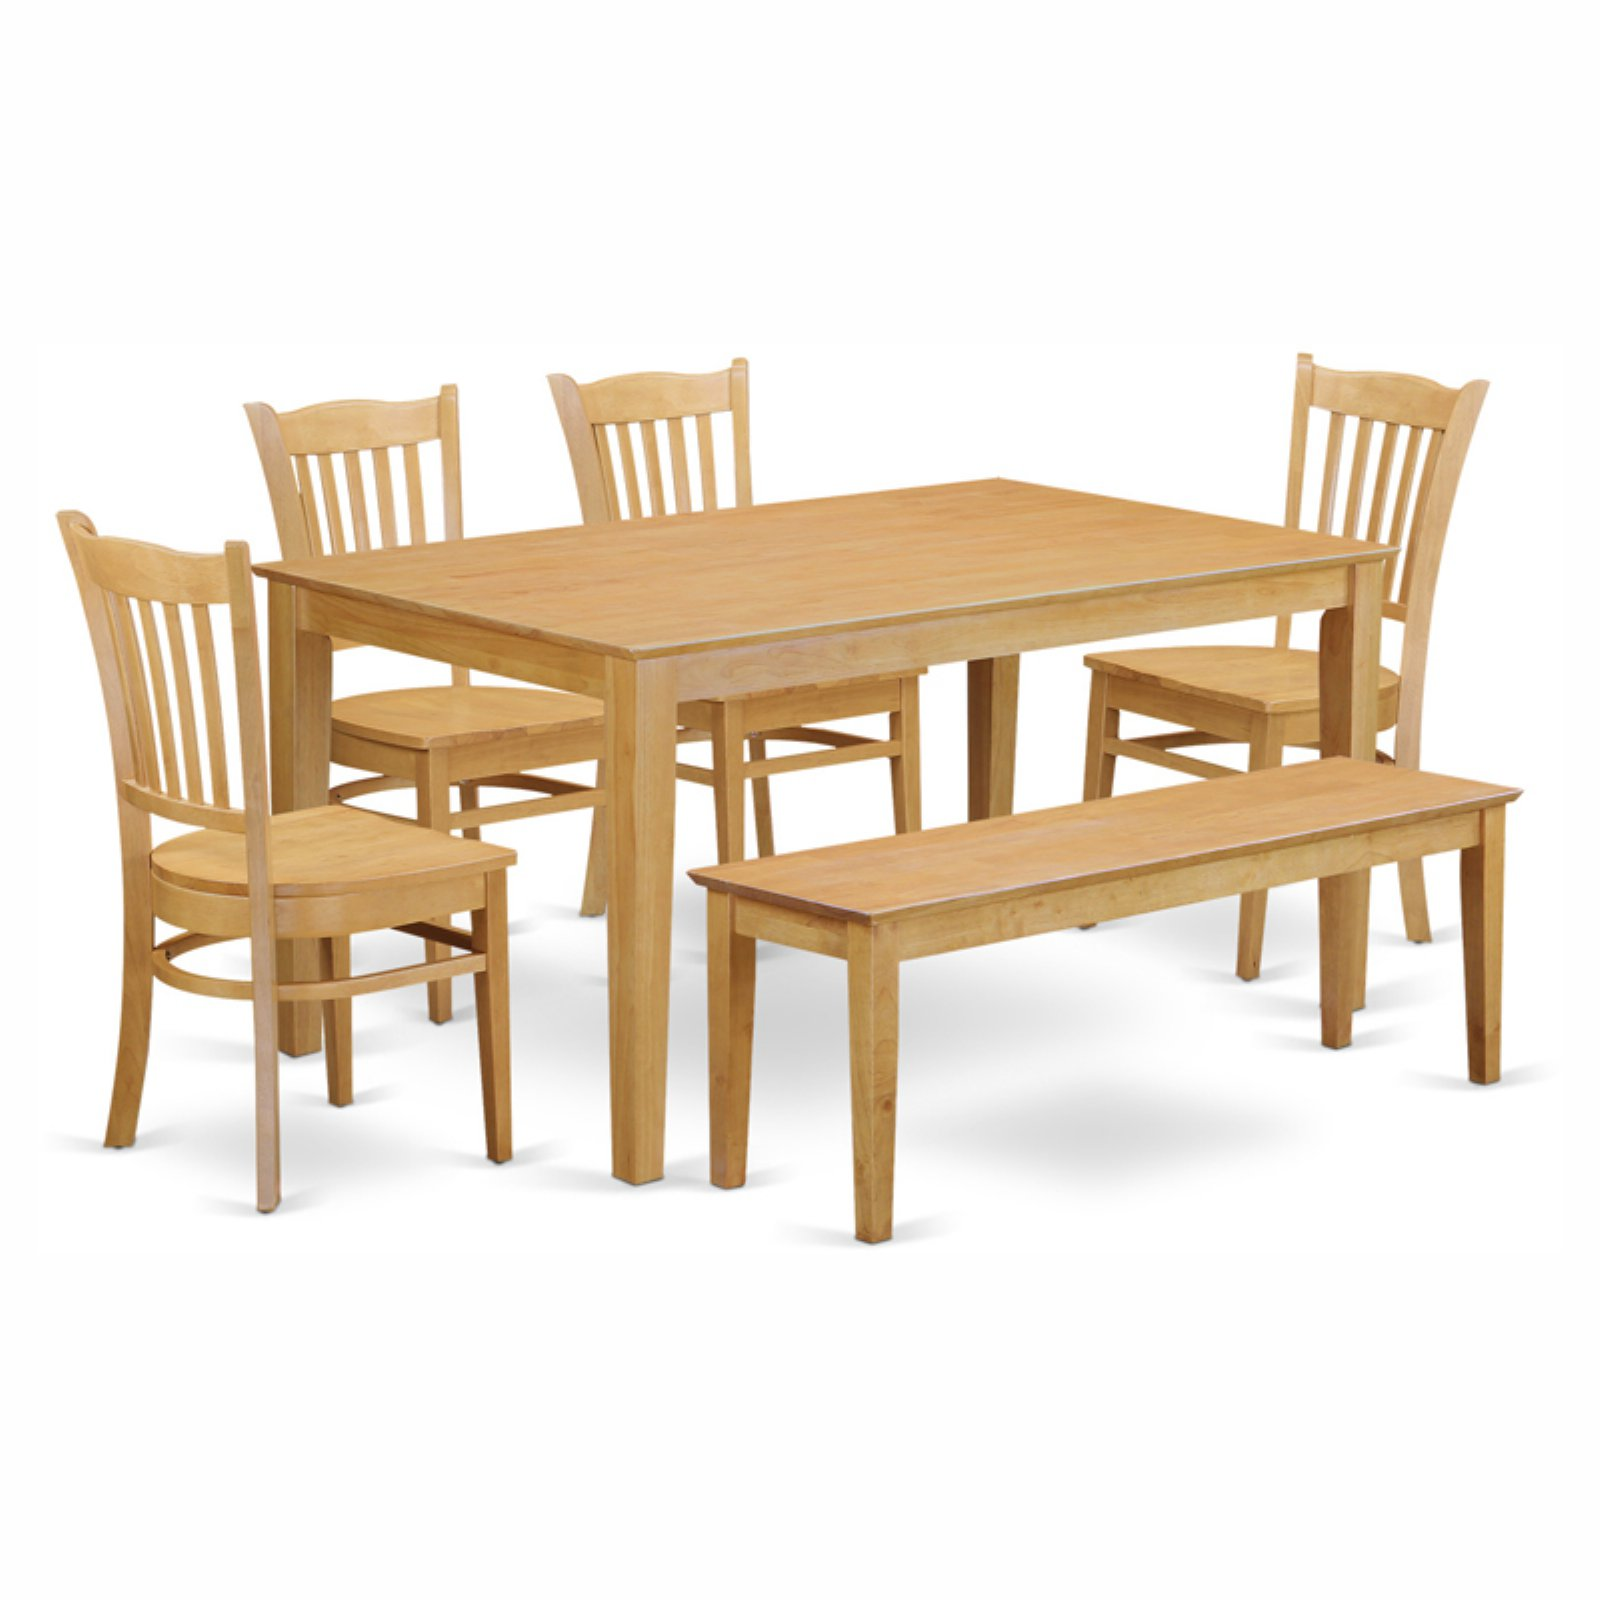 East West Furniture Capris 6 Piece Rectangular Dining Table Set with Groton Wooden Seat Chairs